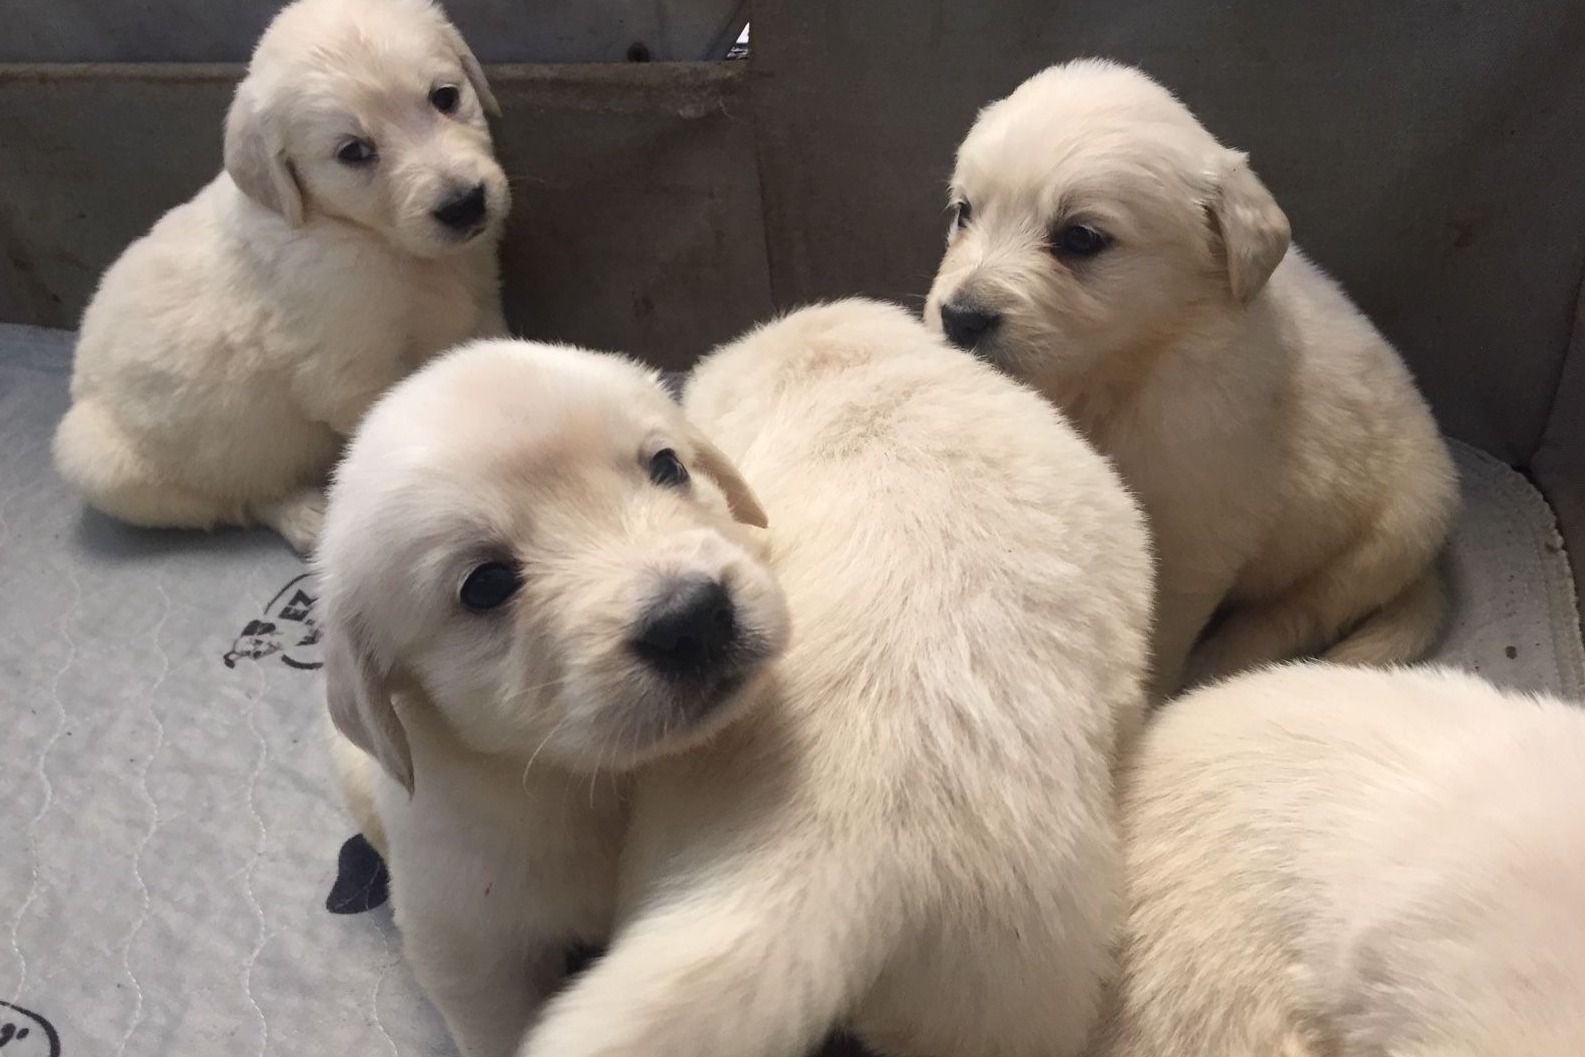 Thomas Flynn Has Golden Retriever Puppies For Sale In Johnstown